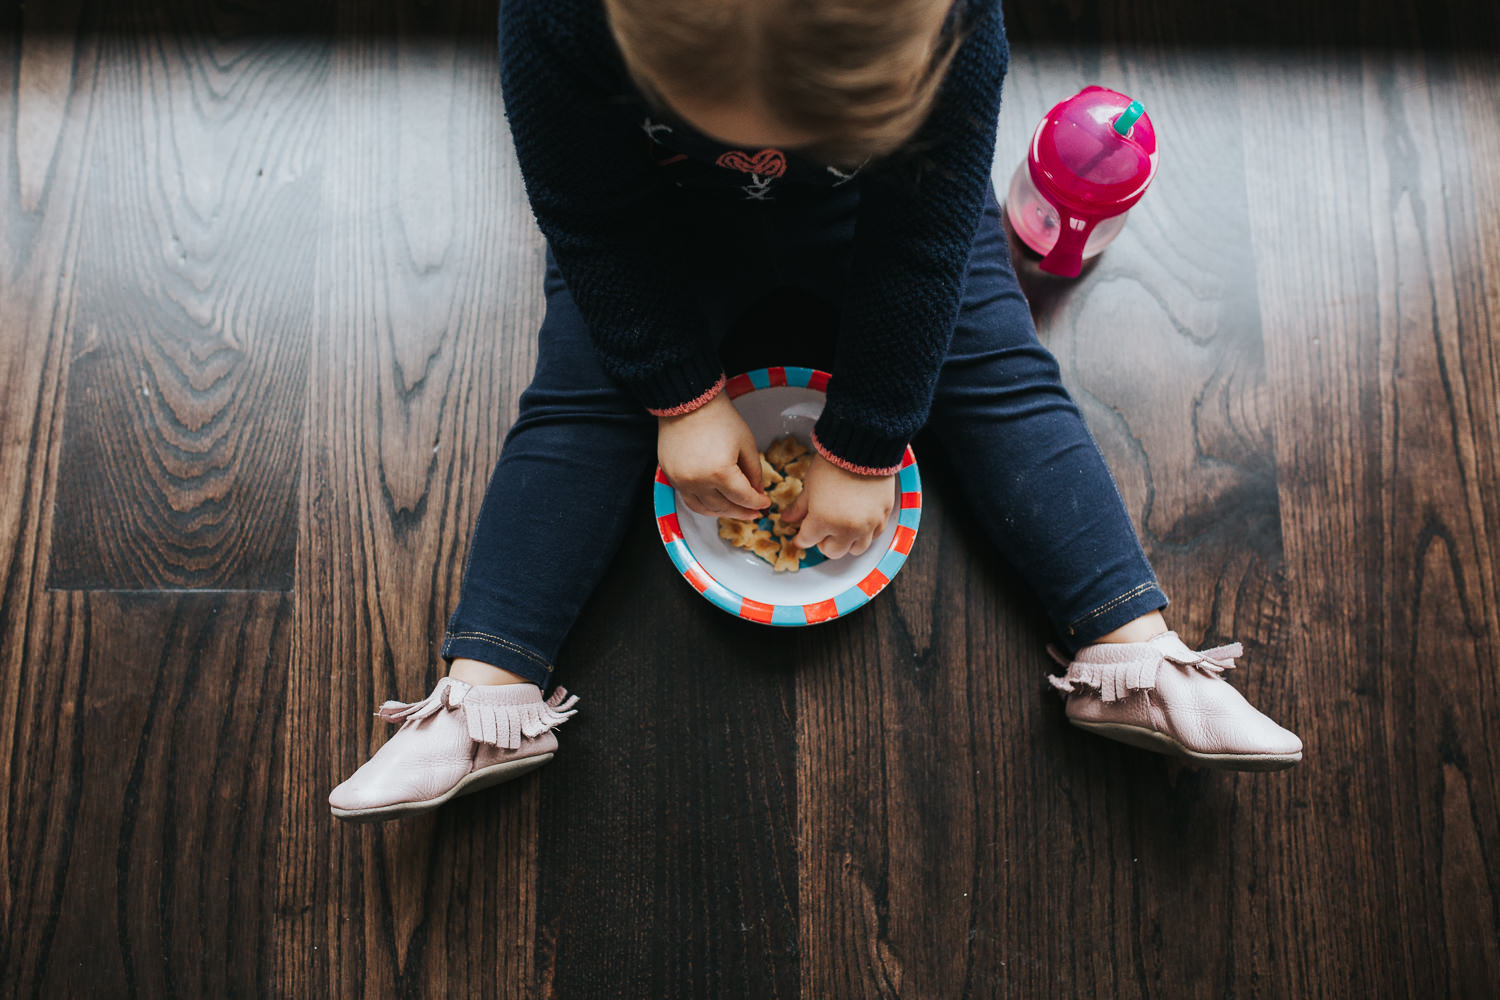 2 year old toddler girl sitting on floor eating snack from a bowl - Stouffville lifestyle photos